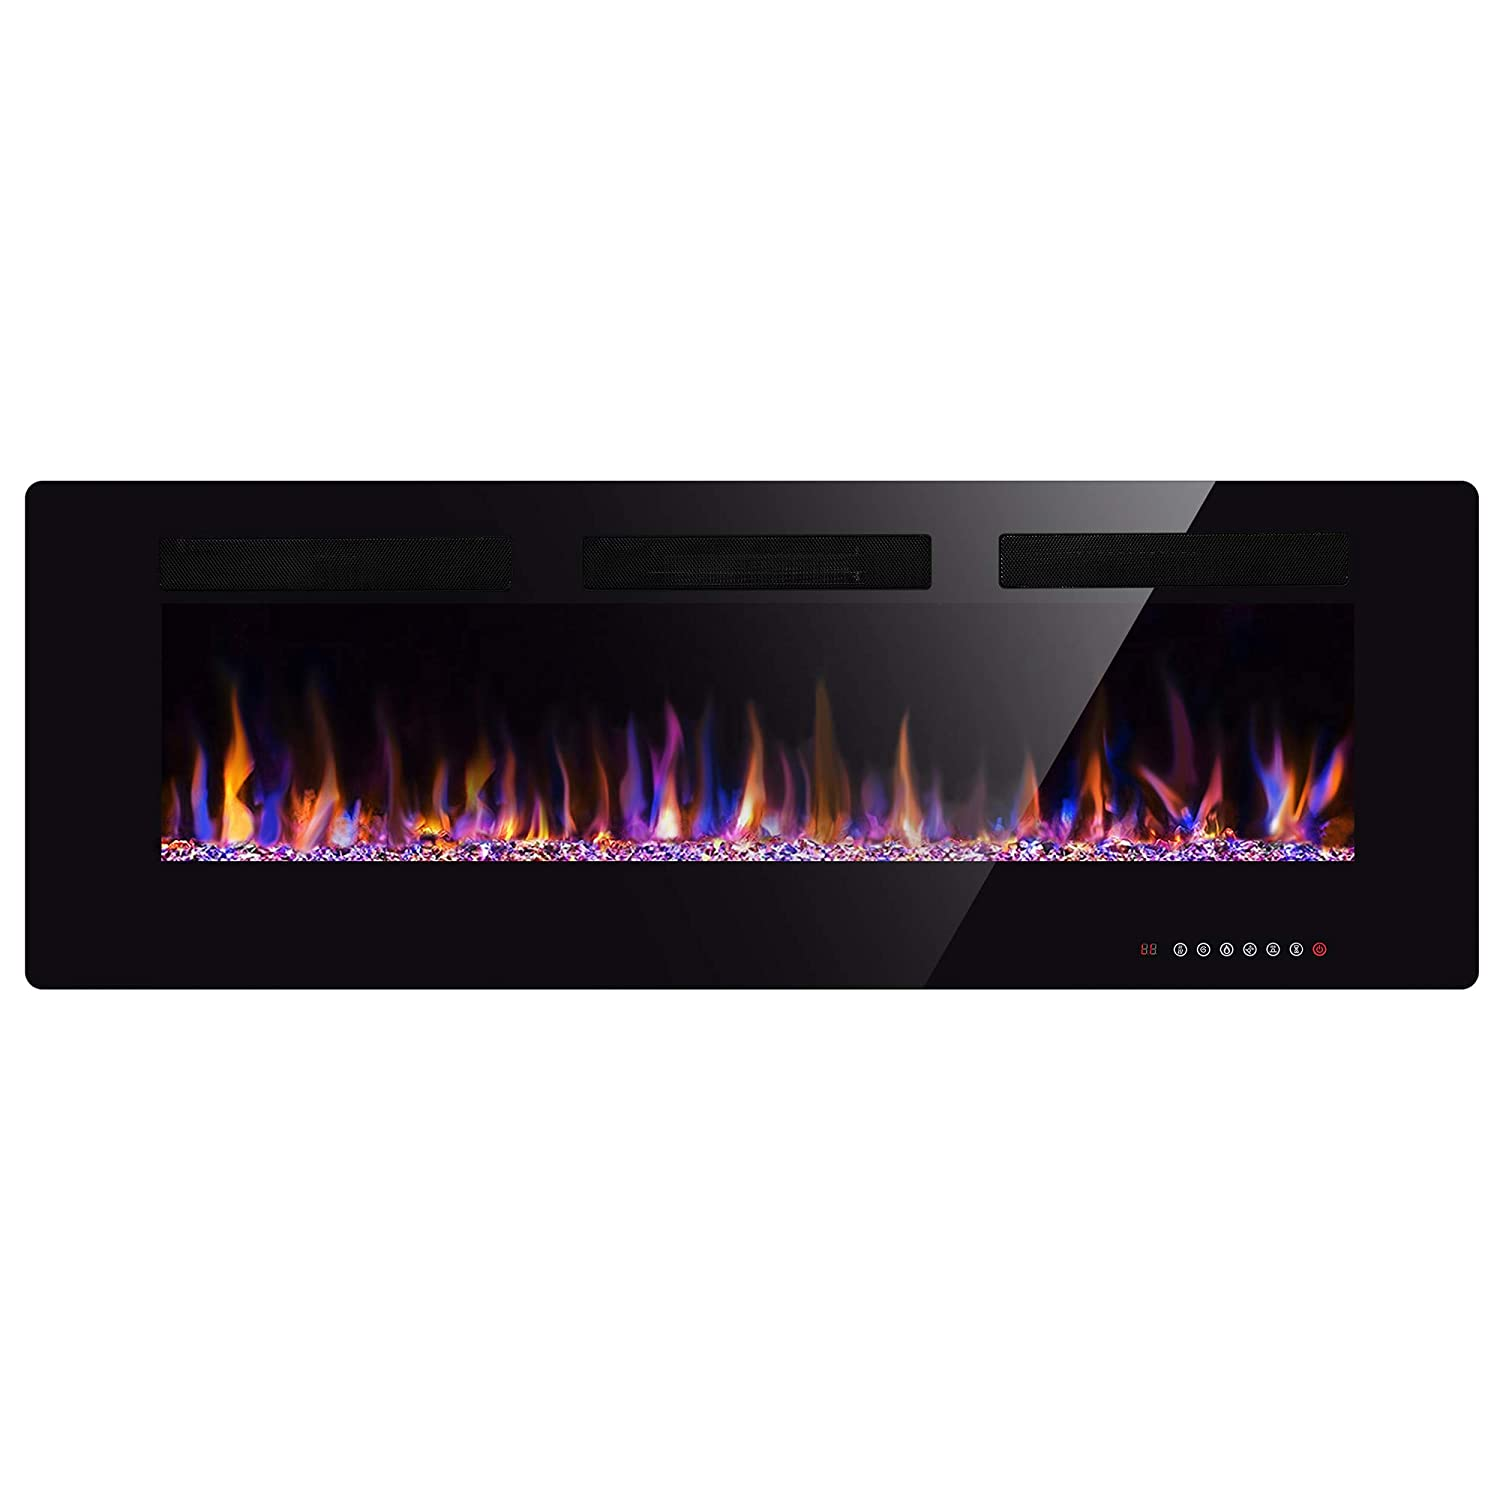 5 Wall Fireplace Review Xbeauty 50 Electric Fireplace In Wall Recessed Wall Mounted 1500w Fireplace Heater Linear Fireplace Timer Multicolor